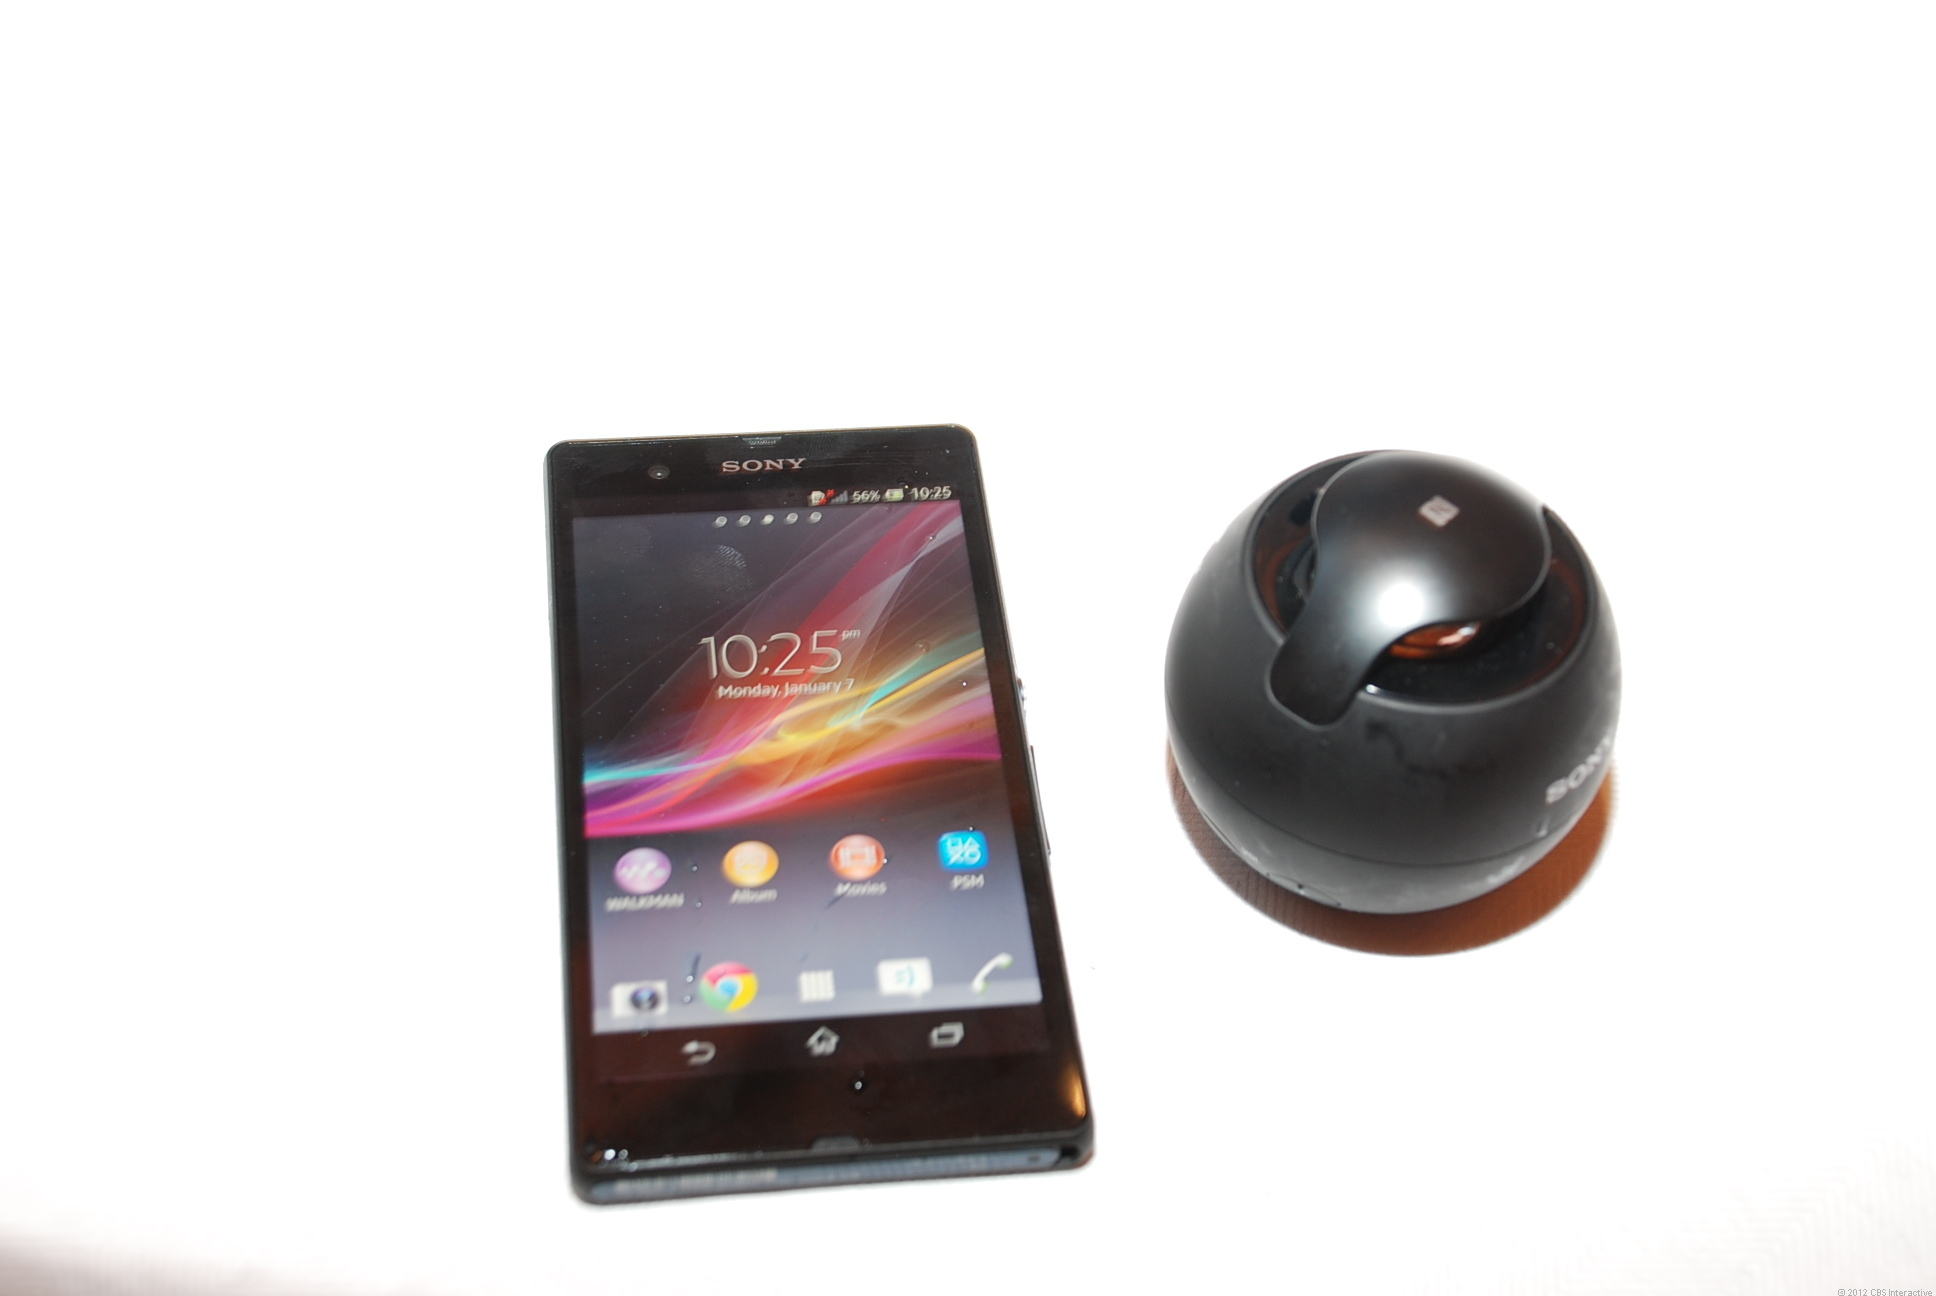 Xperia_Z_and_speaker.jpg